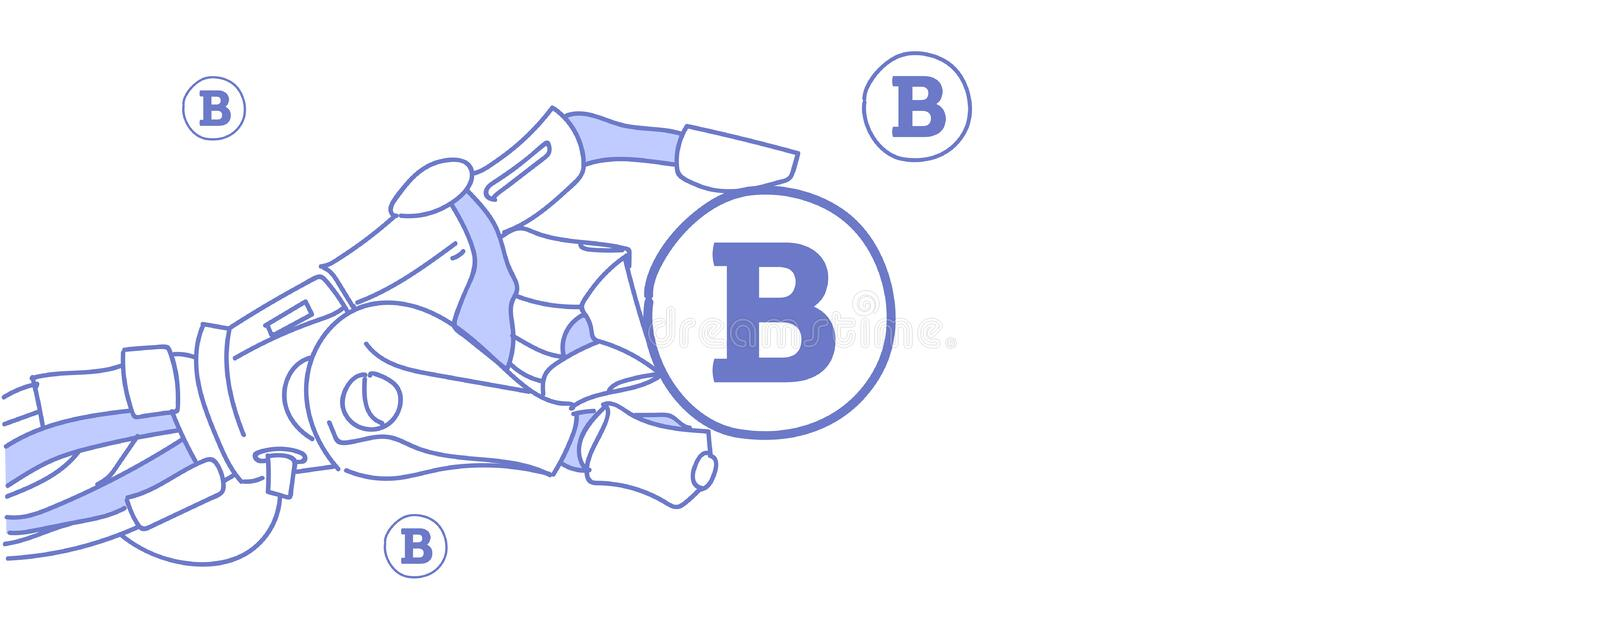 Robot hand holding bitcoin mining virtual assistance crypto currency concept artificial intelligence sketch doodle vector illustration